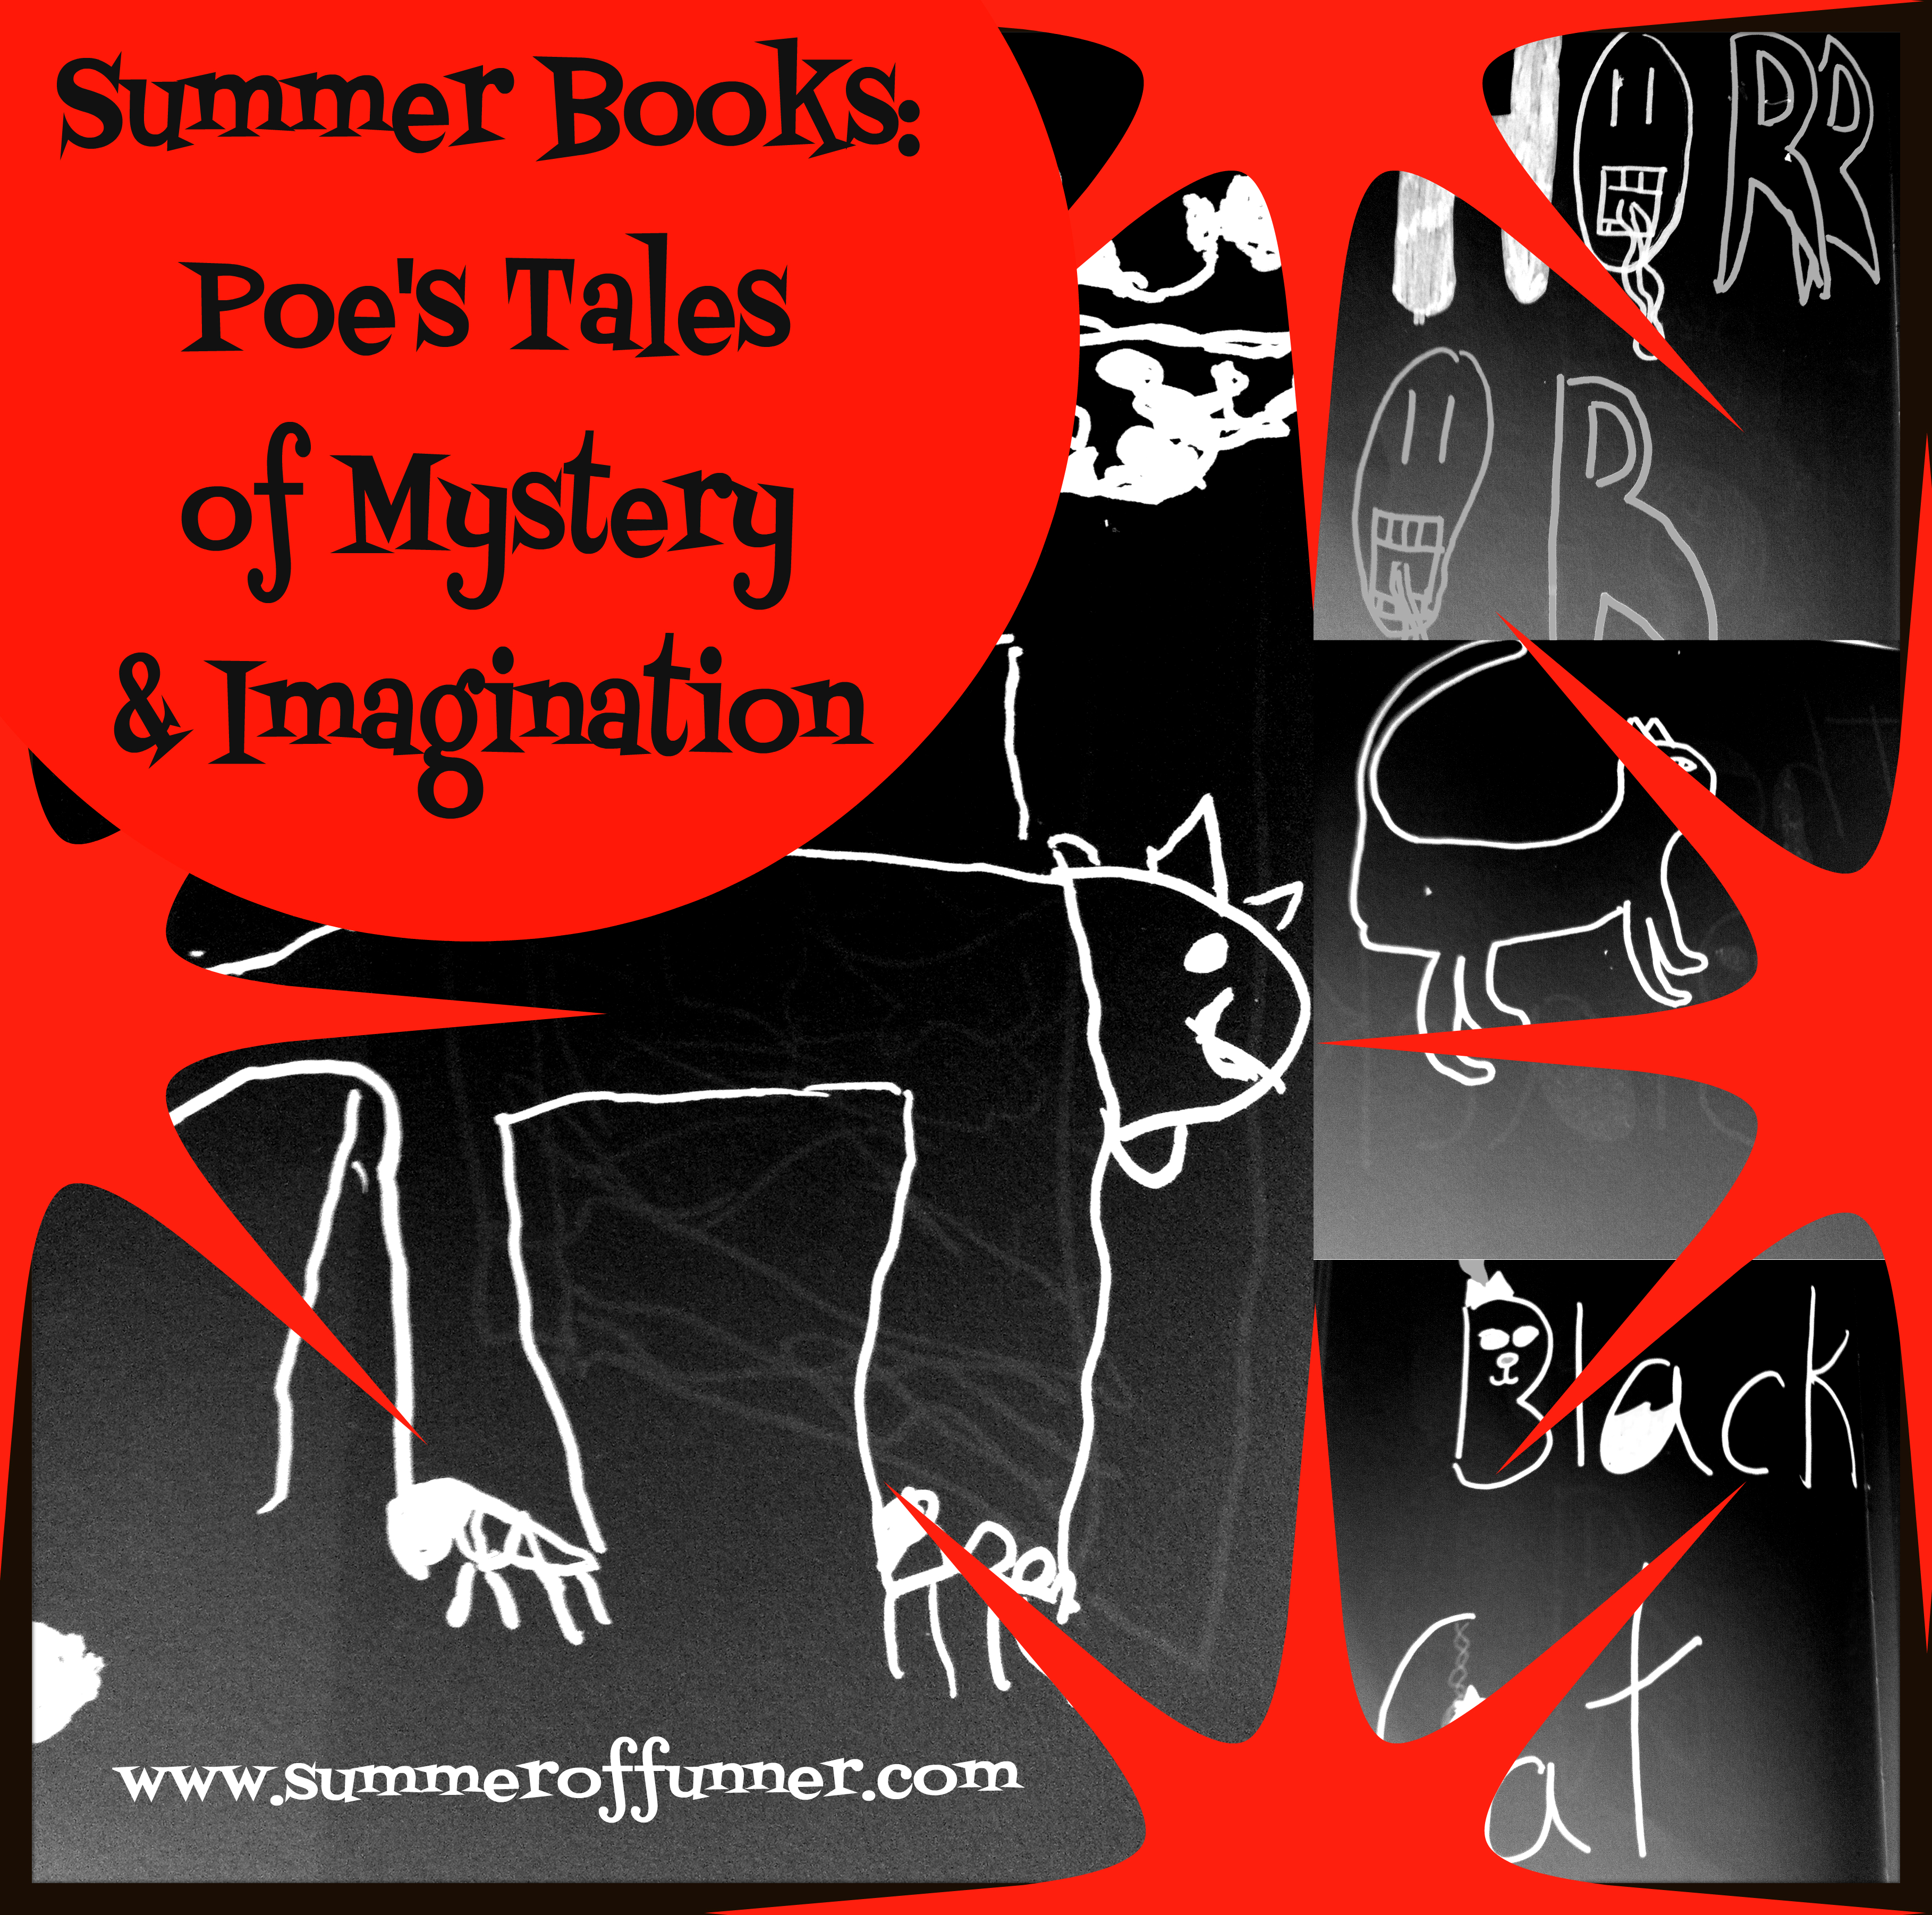 Summer Books Poe's Tales of Mystery and Imagination